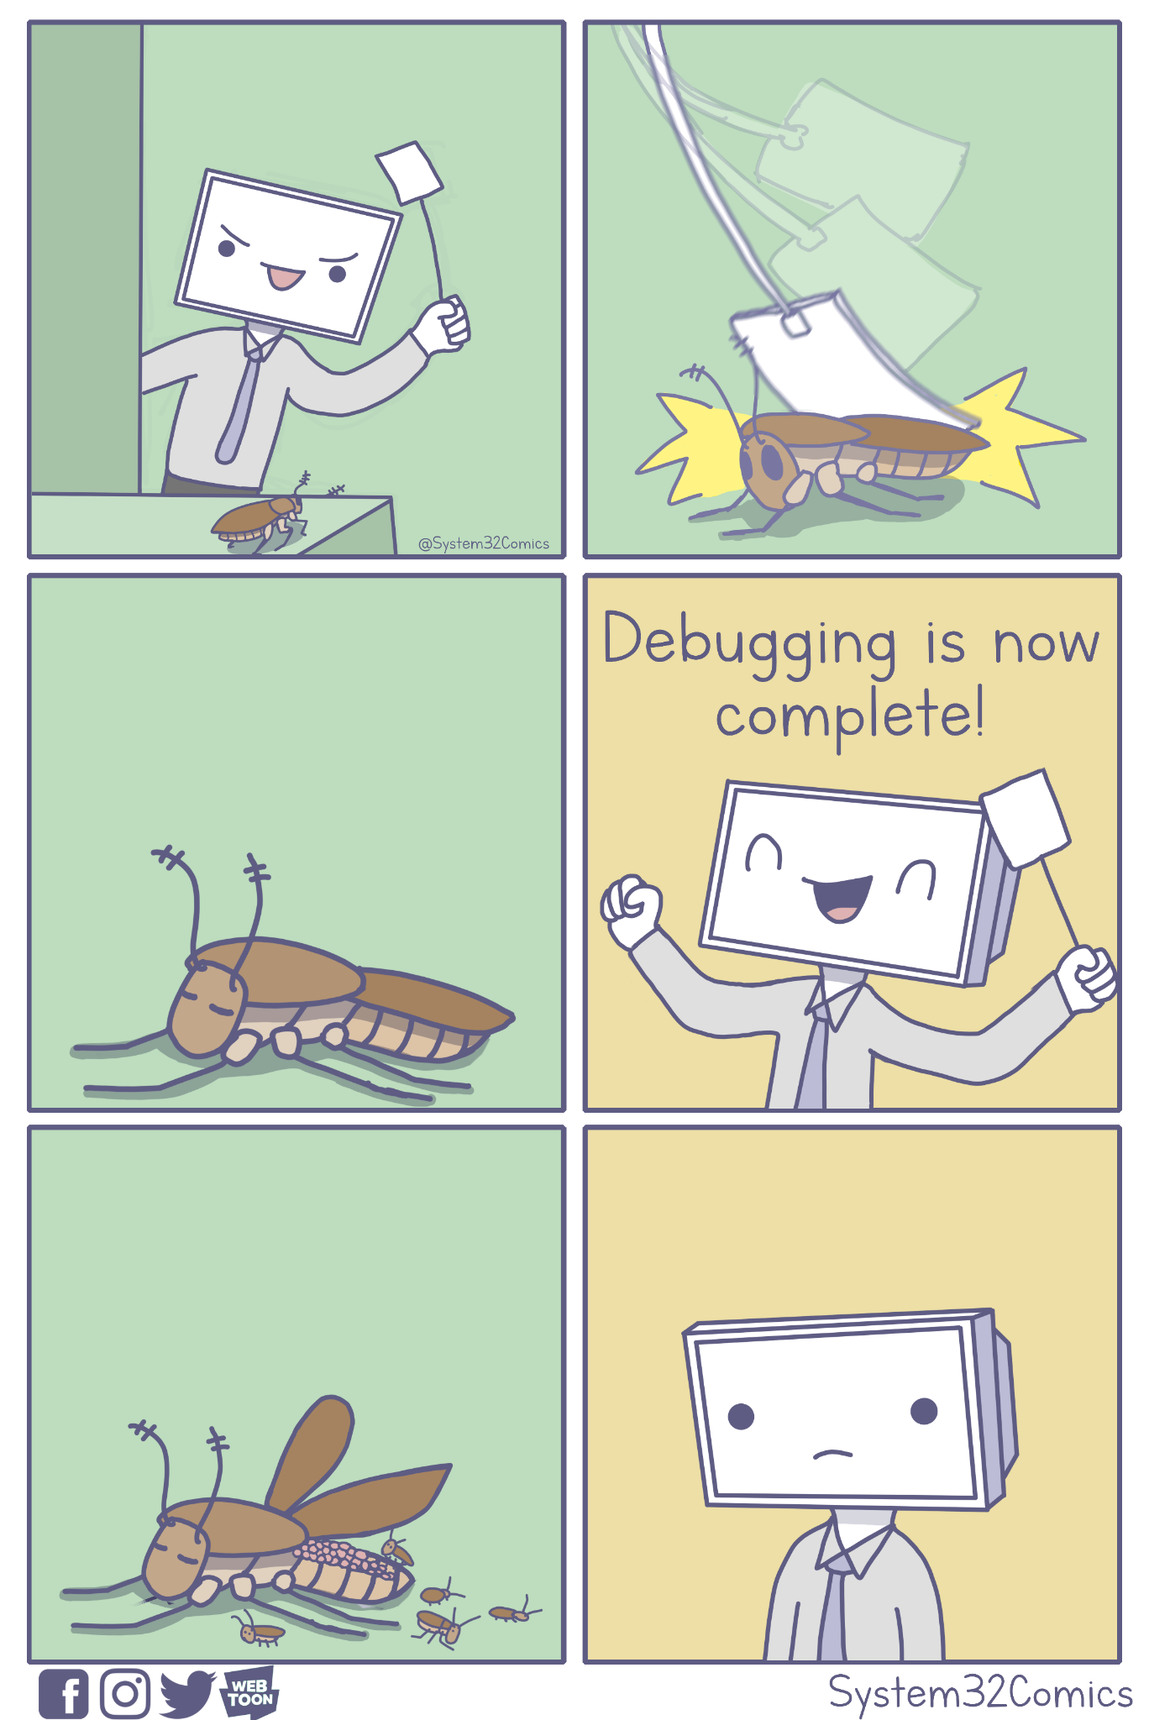 Debugging [OC] - meme